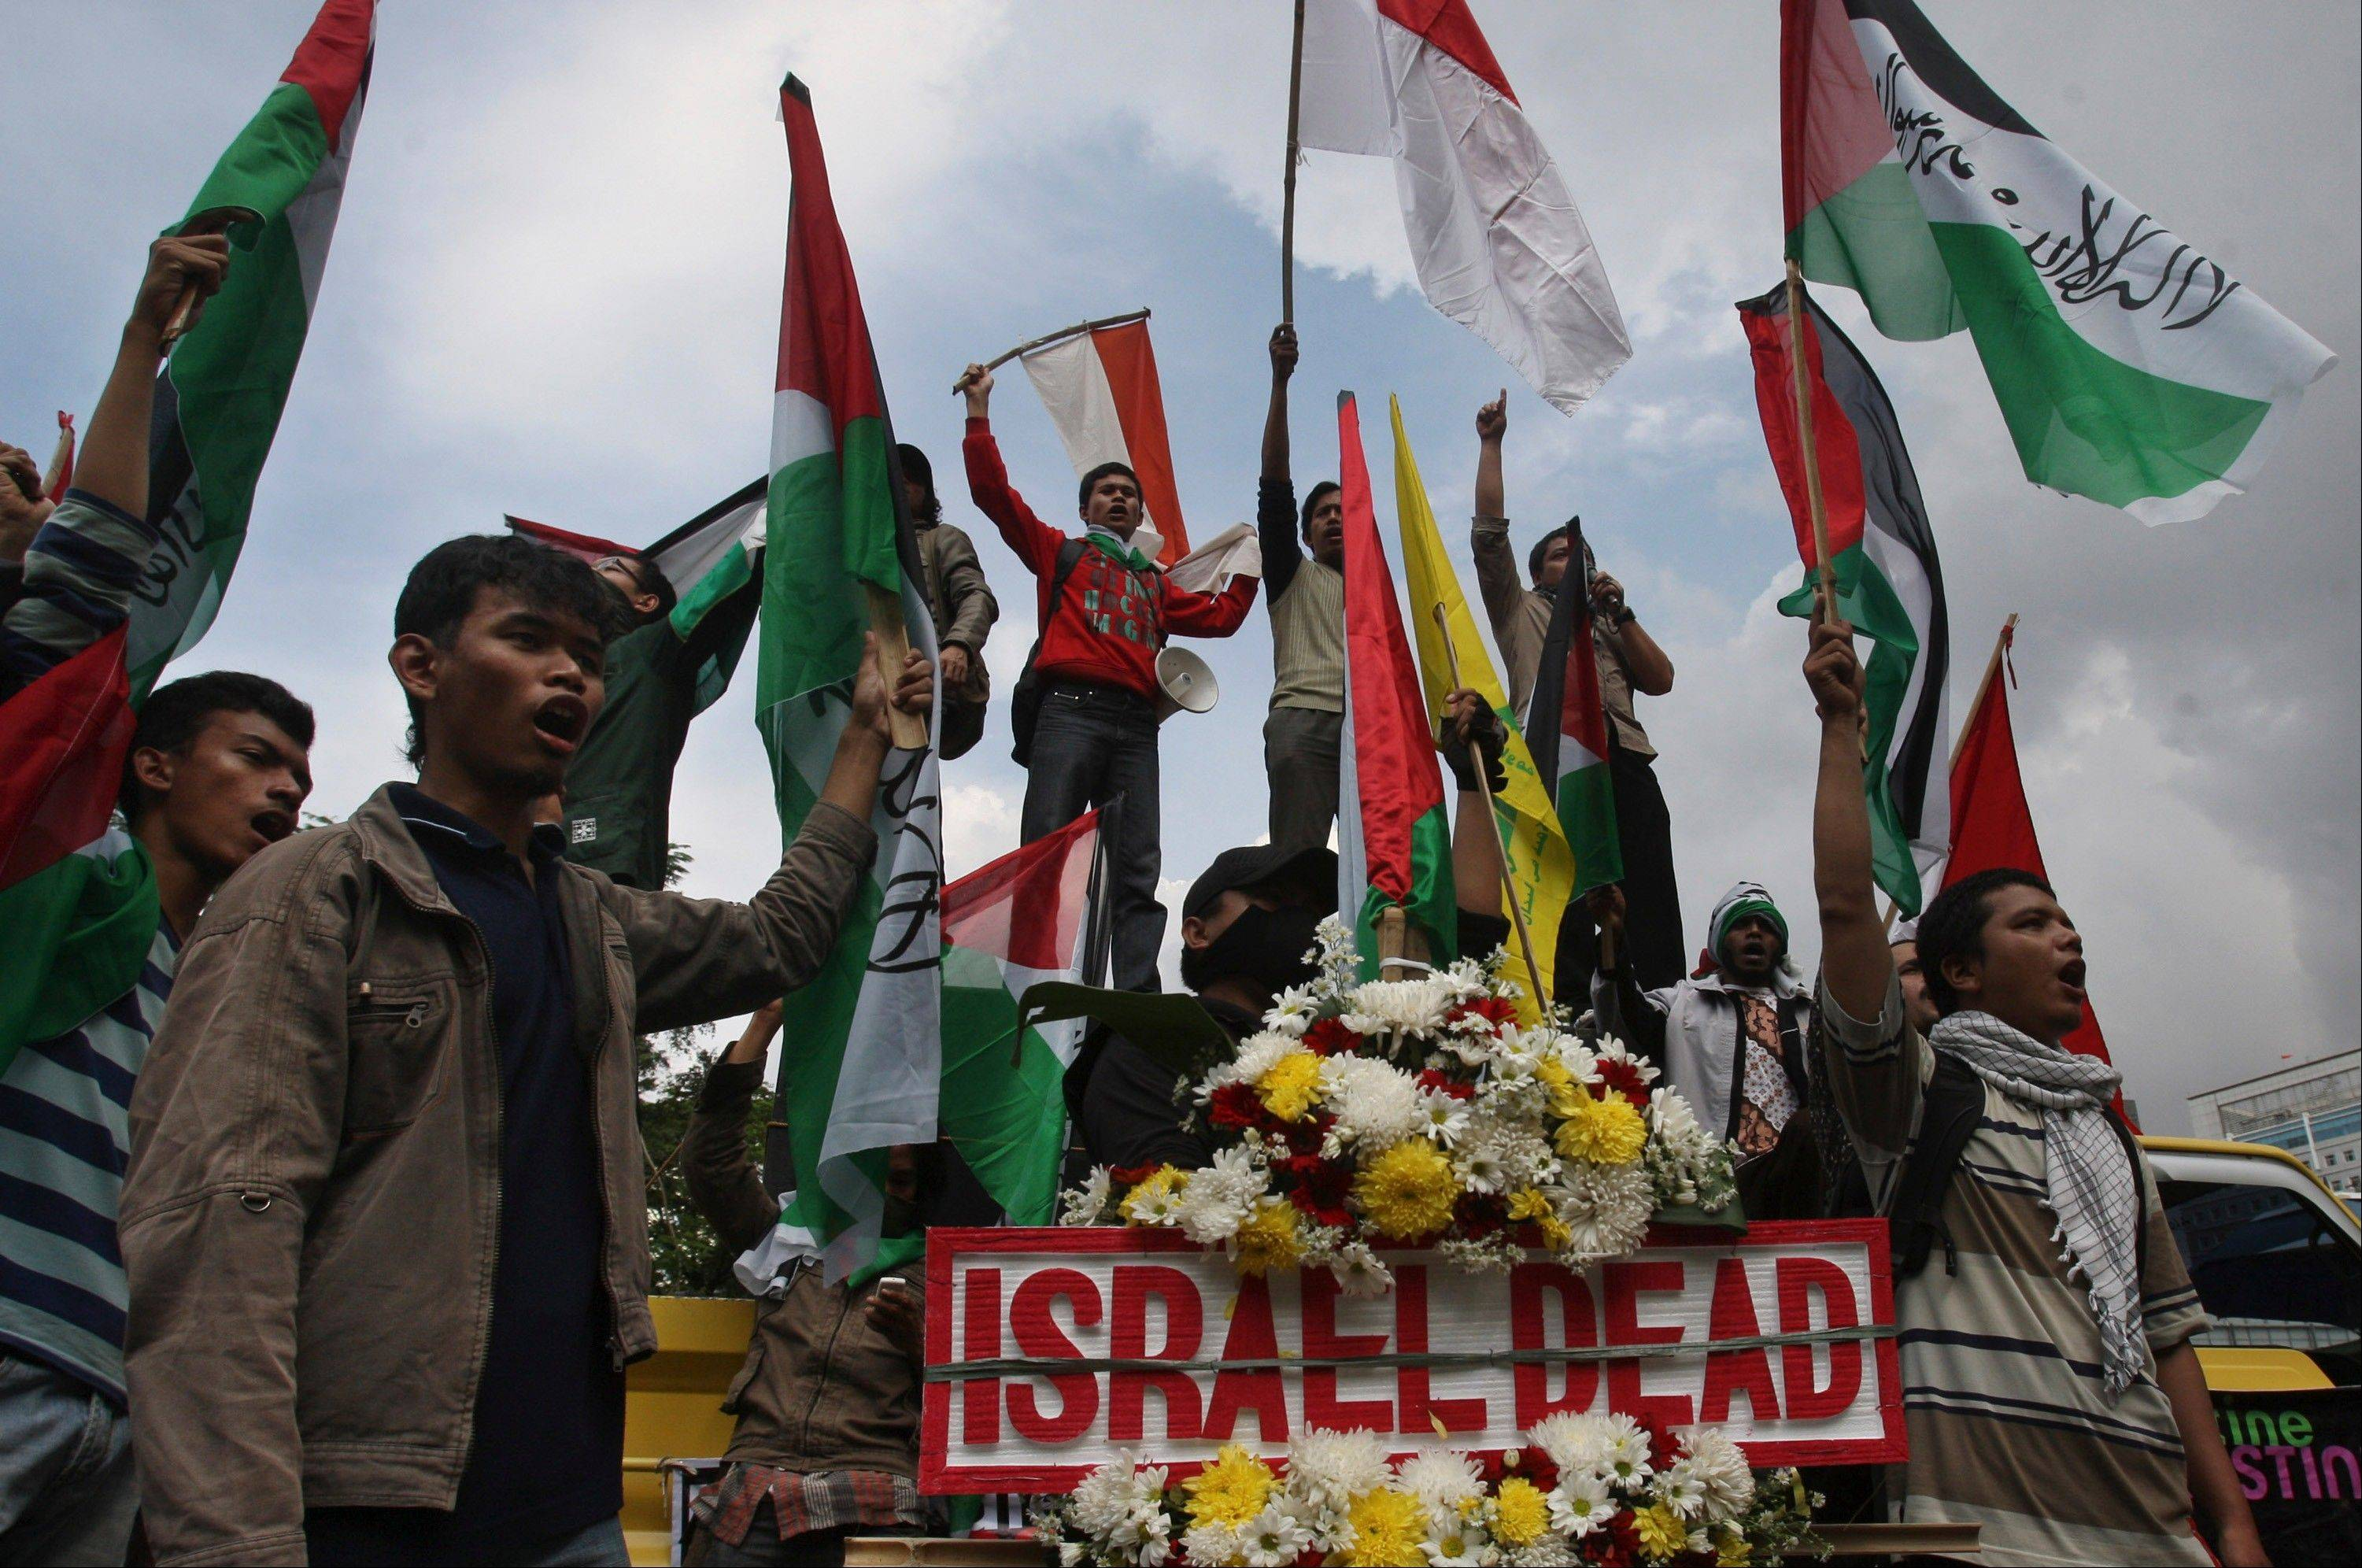 Indonesian Muslim protesters shout slogans during a protest against Israeli military operations in Gaza Strip, outside the U.S. Embassy in Jakarta, Indonesia, Friday, Nov. 23, 2012. More than a thousand Muslim hard-liners held the demonstration to condemn Israel's recent offensive against Palestinians in Gaza.